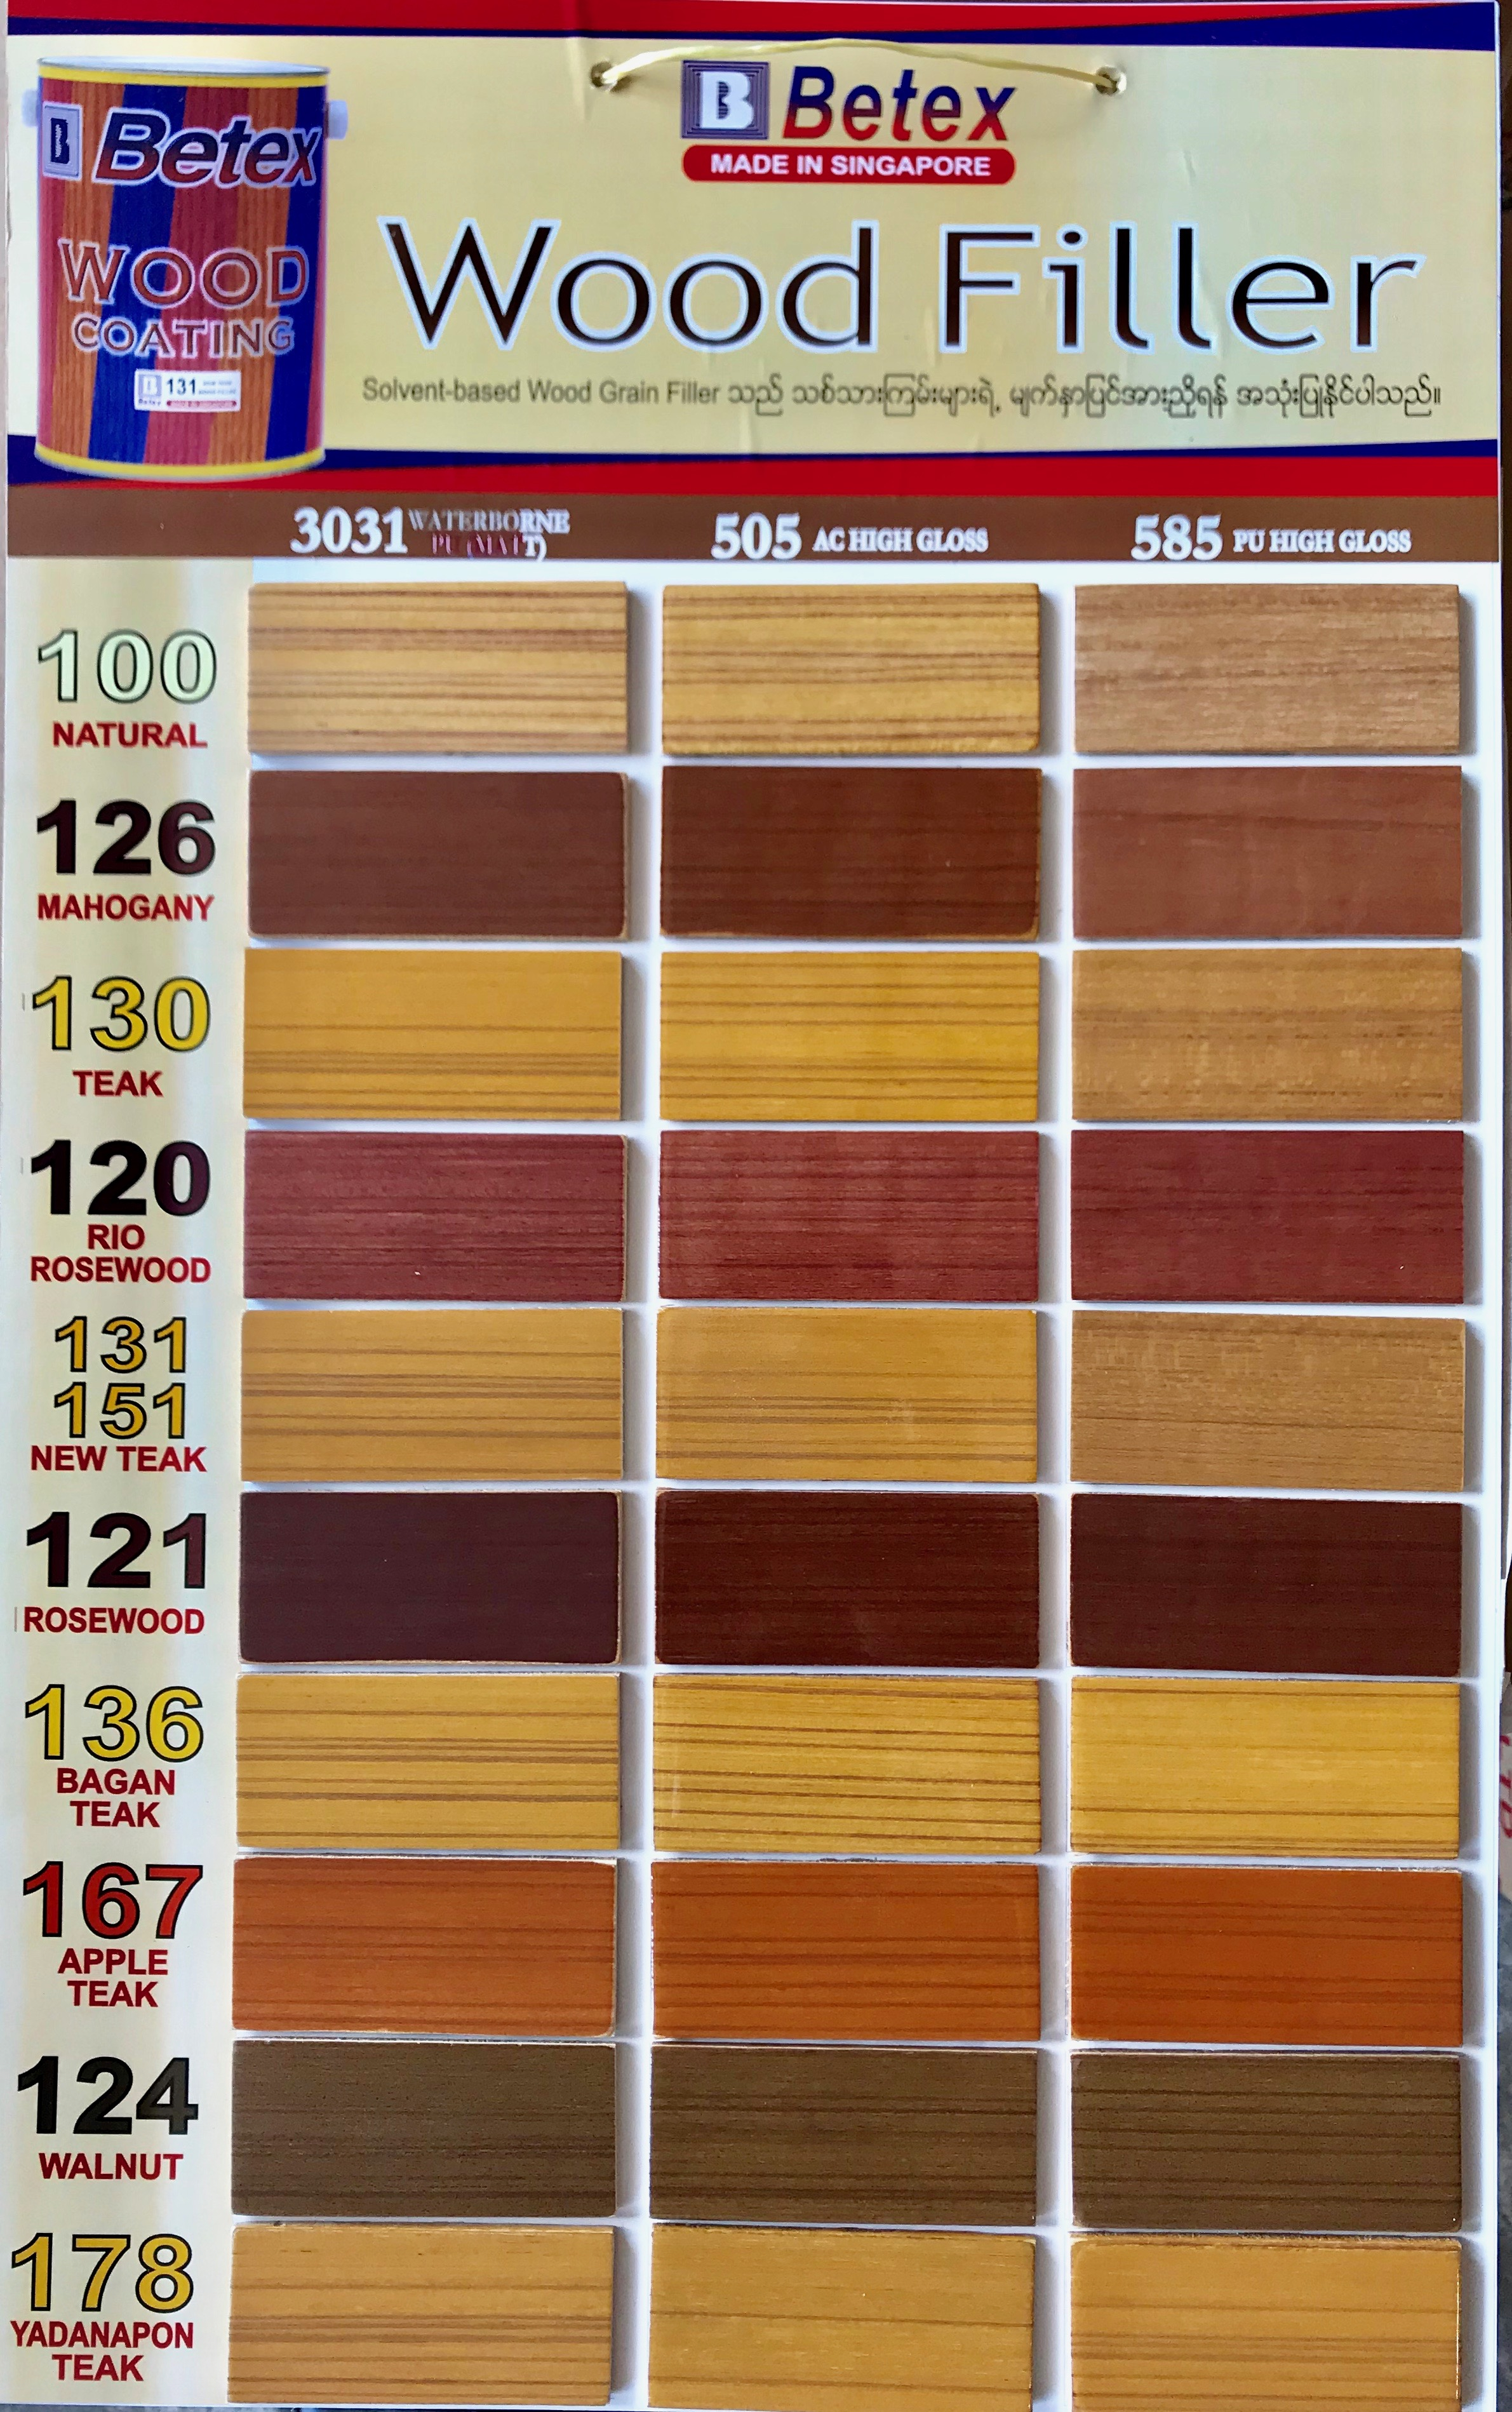 Fabric dyeing color mixing chart gallery free any chart examples fabric dyeing color mixing chart gallery free any chart examples procion dye color mixing chart choice nvjuhfo Choice Image